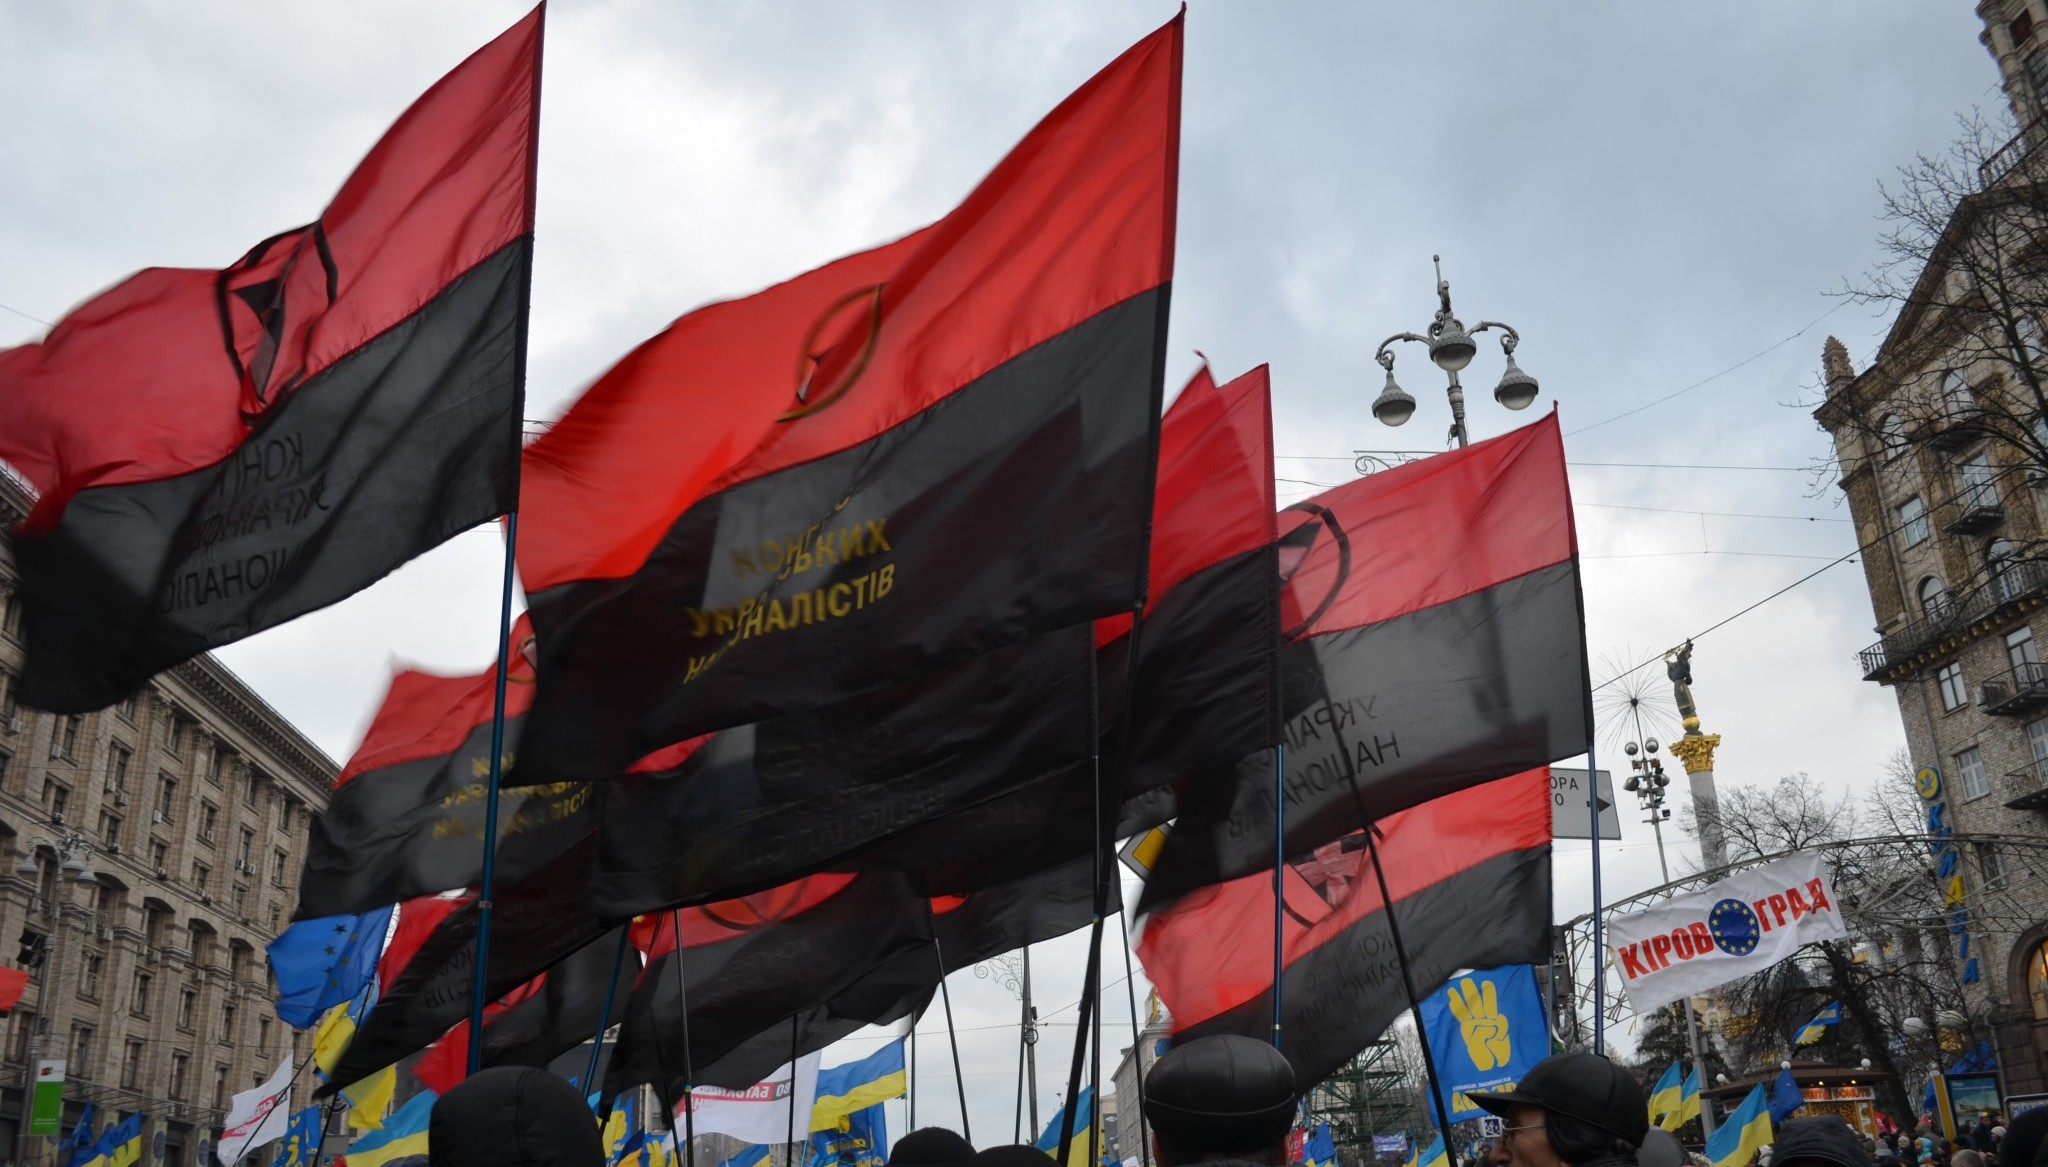 Ukraine: Movement without Change, Change without Movement (Postcommunist States and Nations)